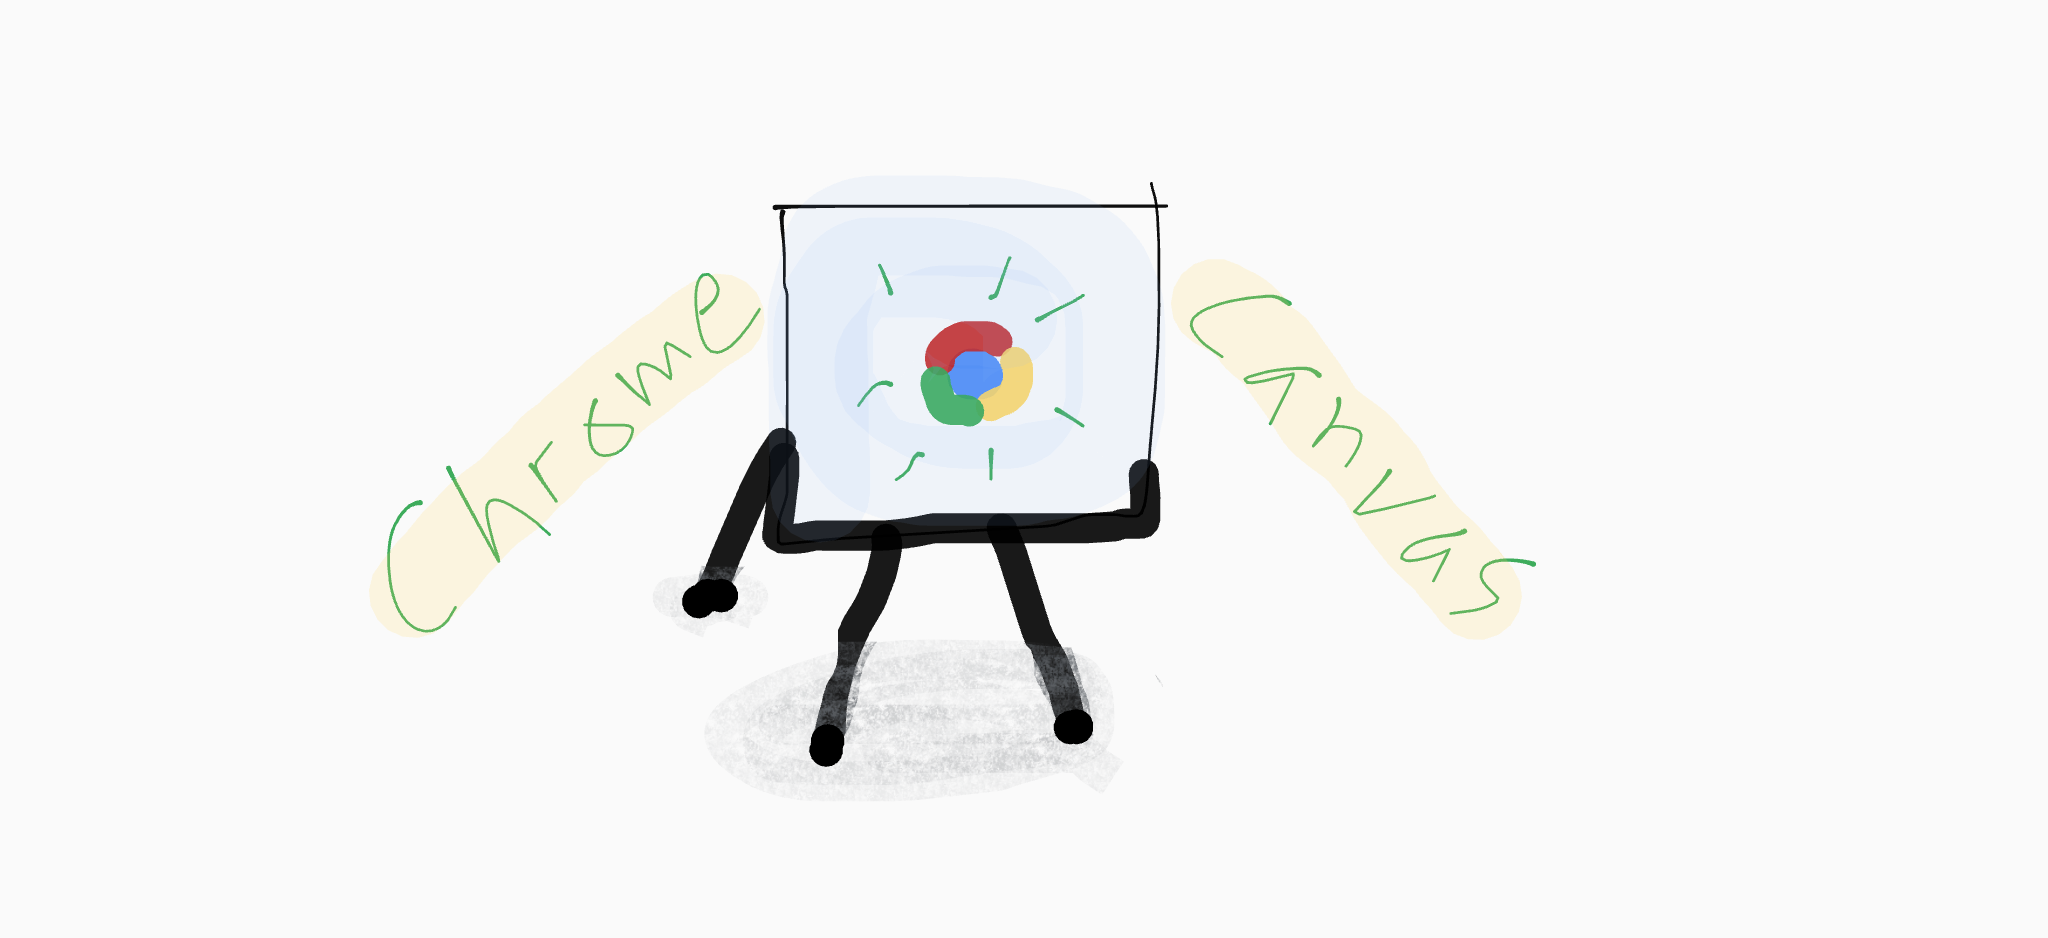 2048x938 Chrome Canvas A New Drawing App From Google Mark Connolly's Corner